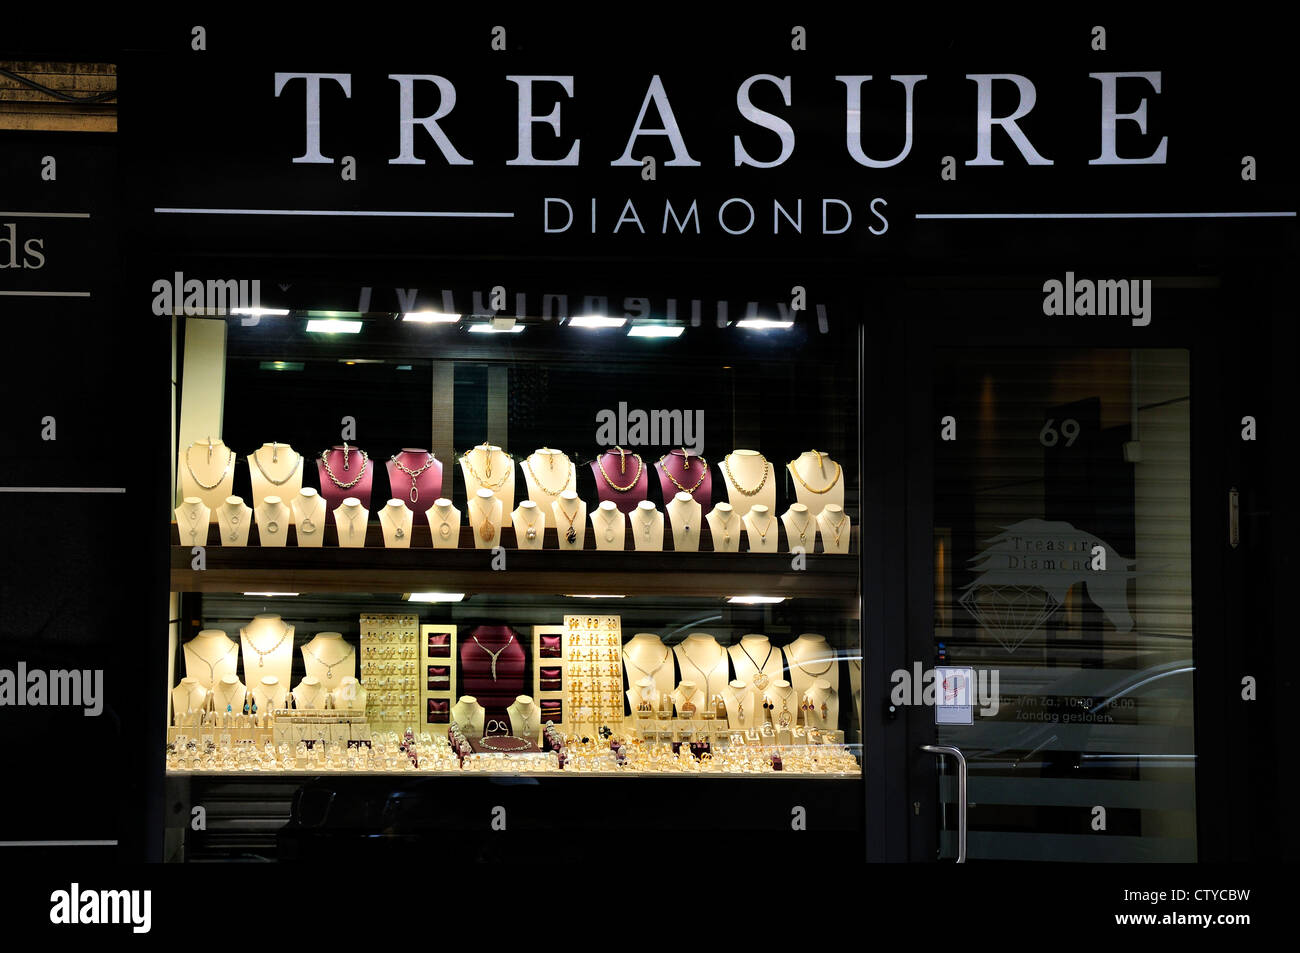 stock diamond knightsbridge england alamy graff photo images shop uk london street sloane photos in